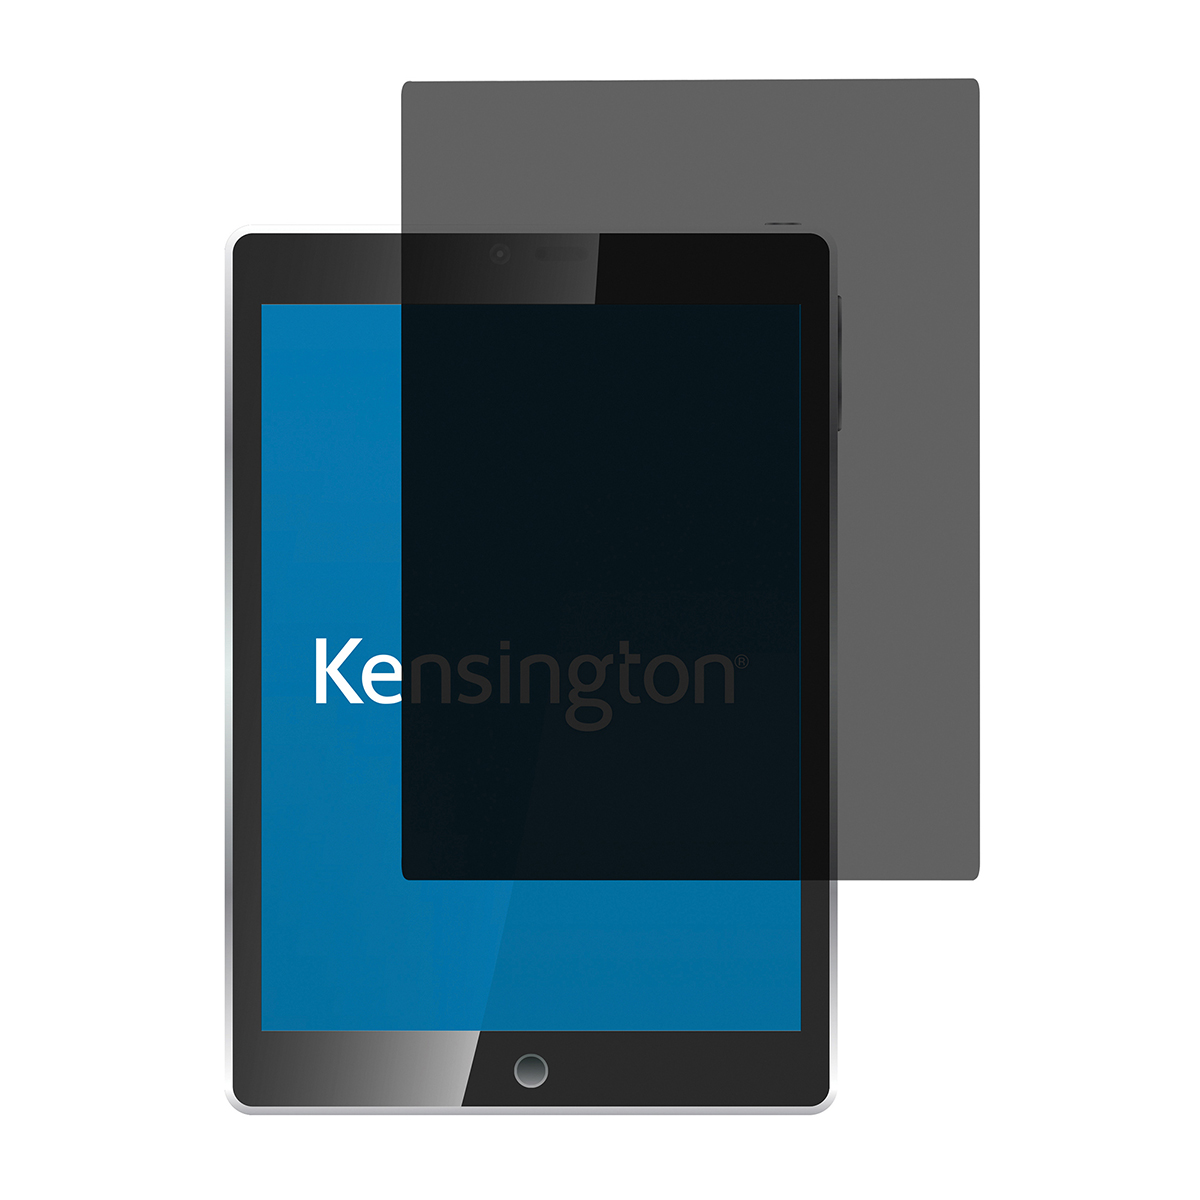 Kensington 626396 Privacy Filter 2 Way Removable for iPad Air - Pro - iPad 2017 Landscape